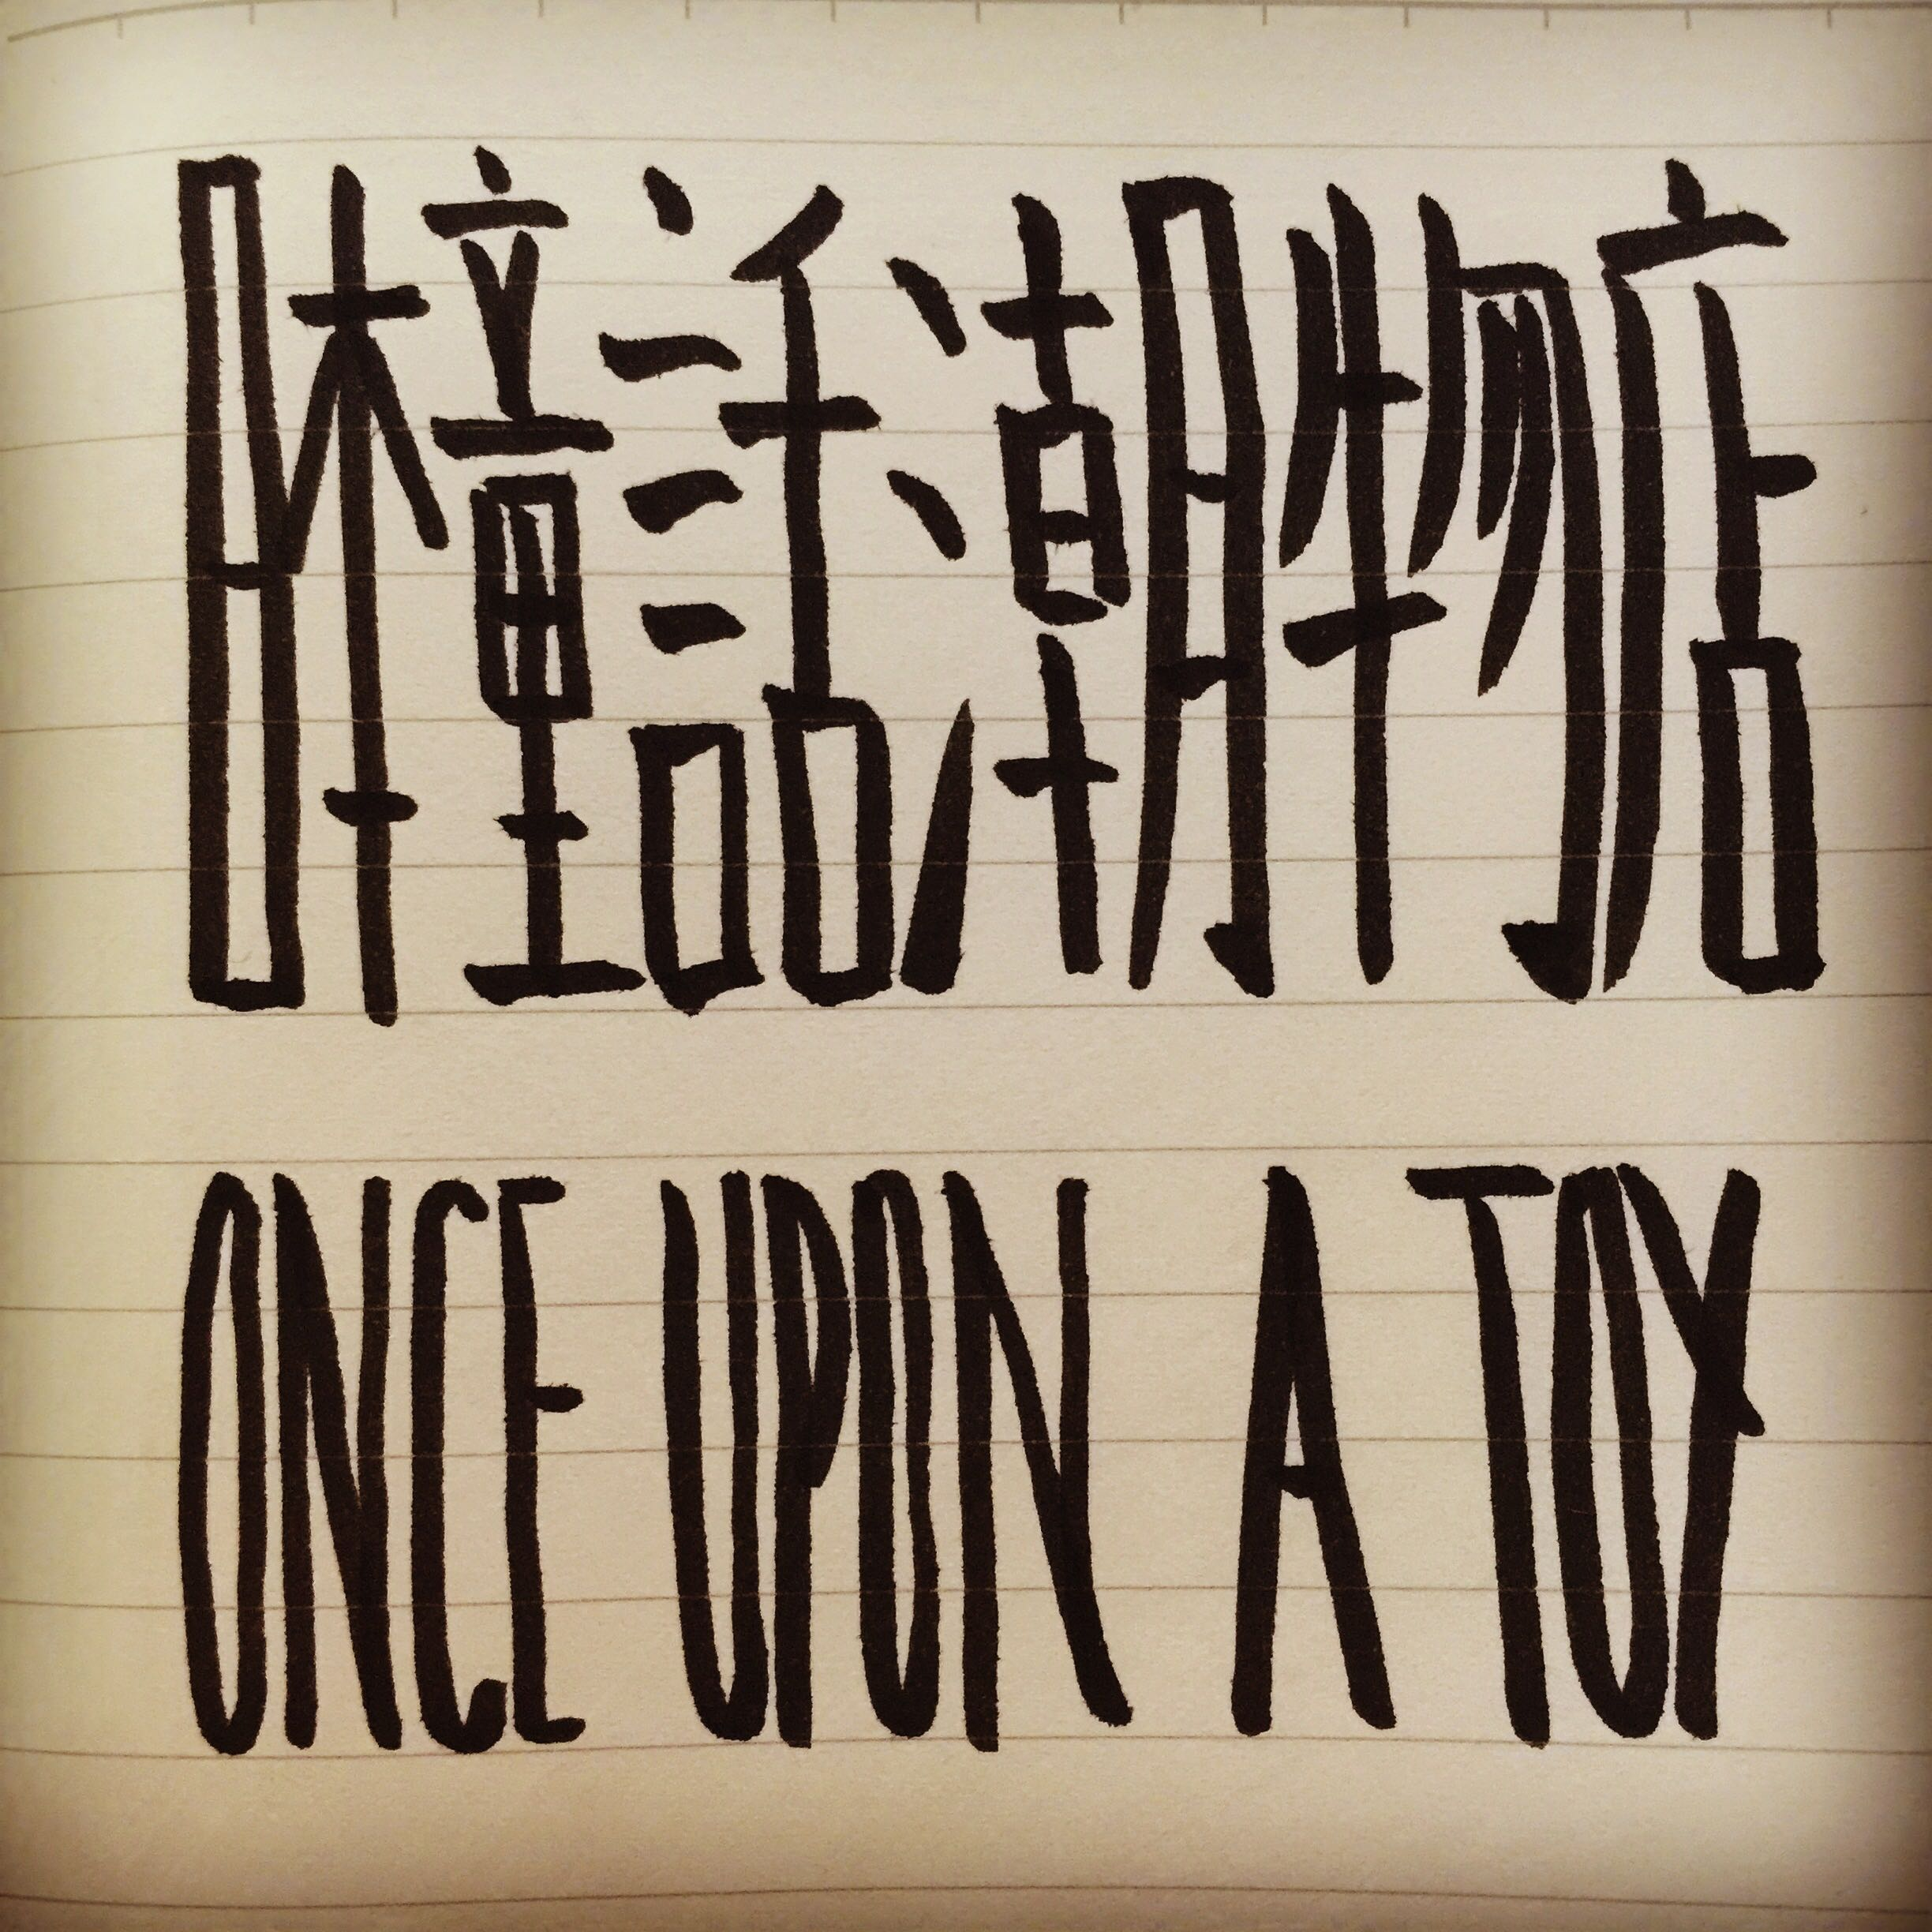 once_upon_a_toy